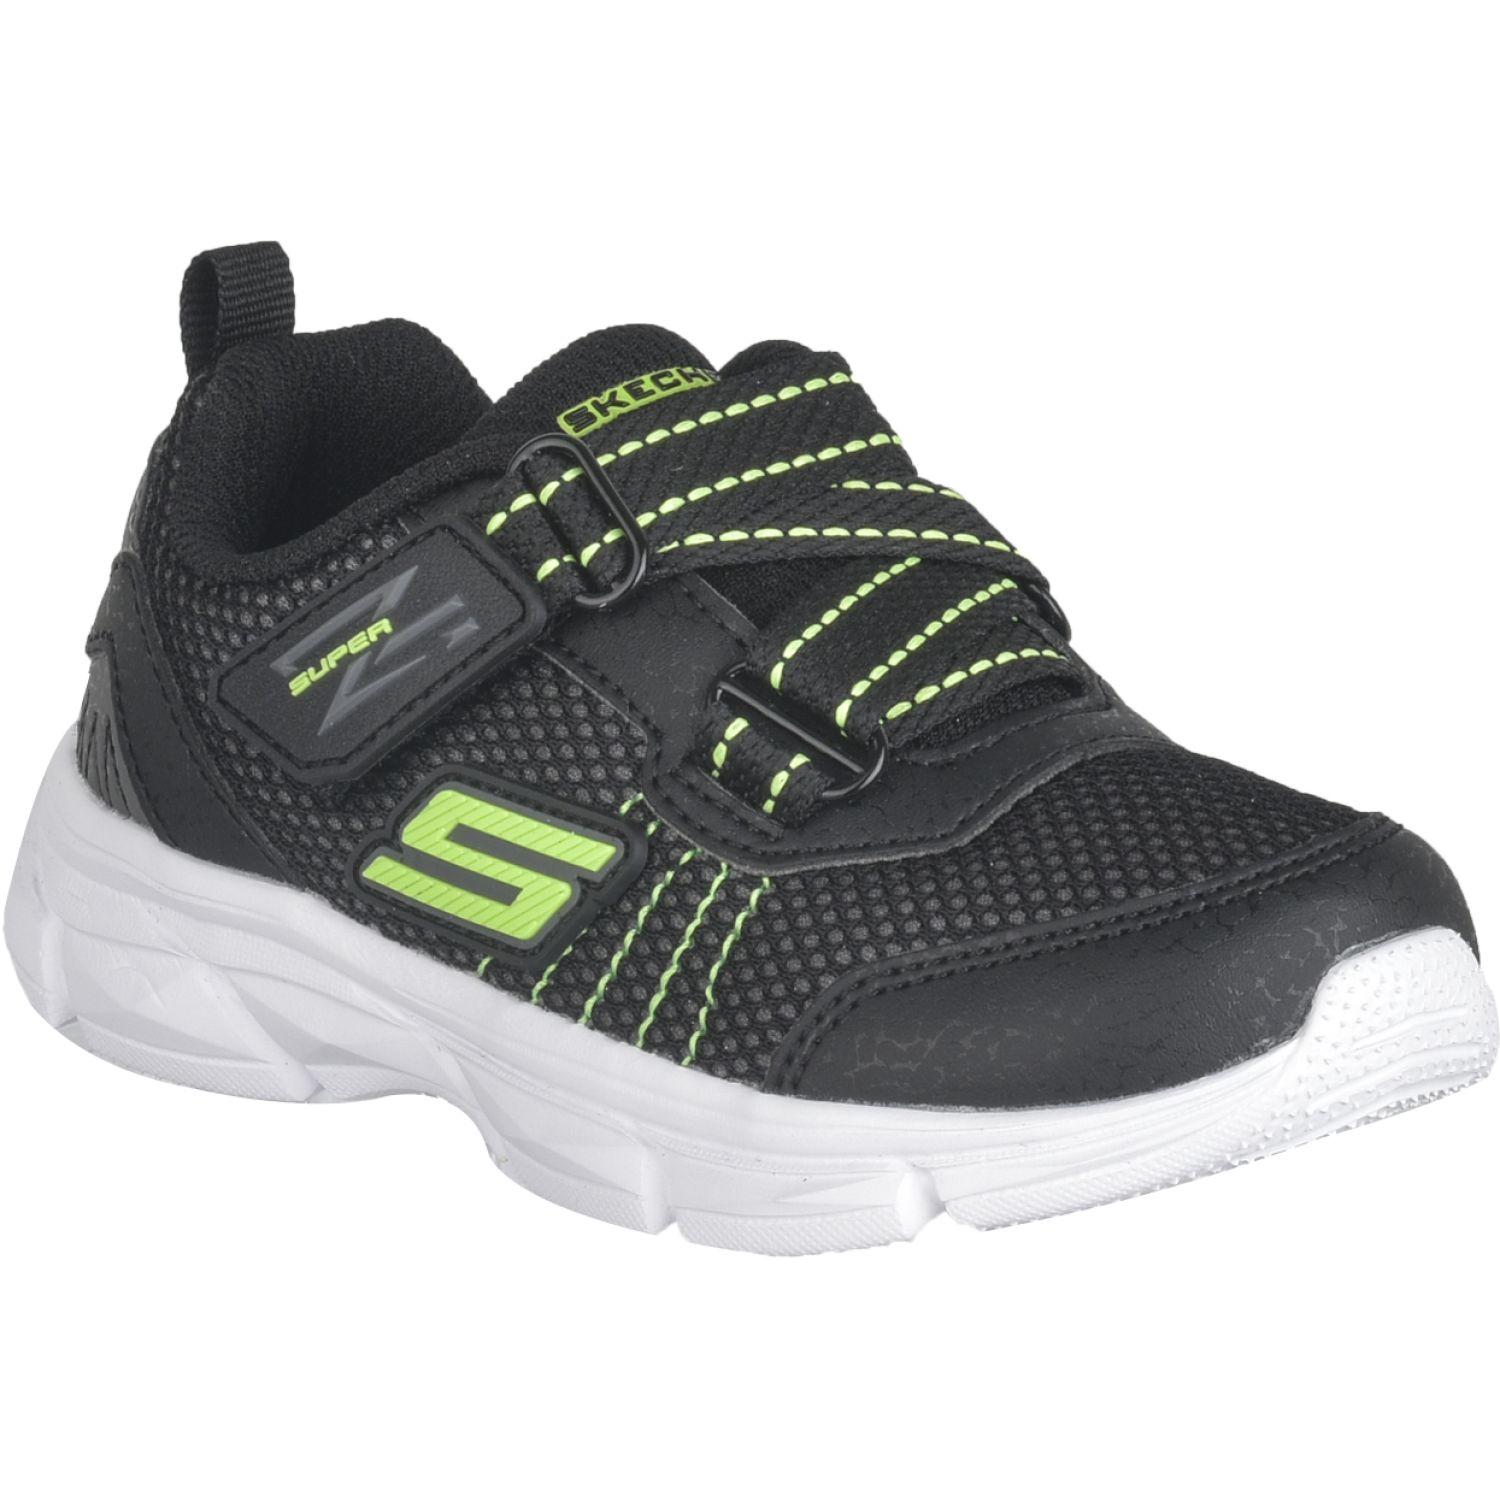 Skechers Advance Negro Para caminar